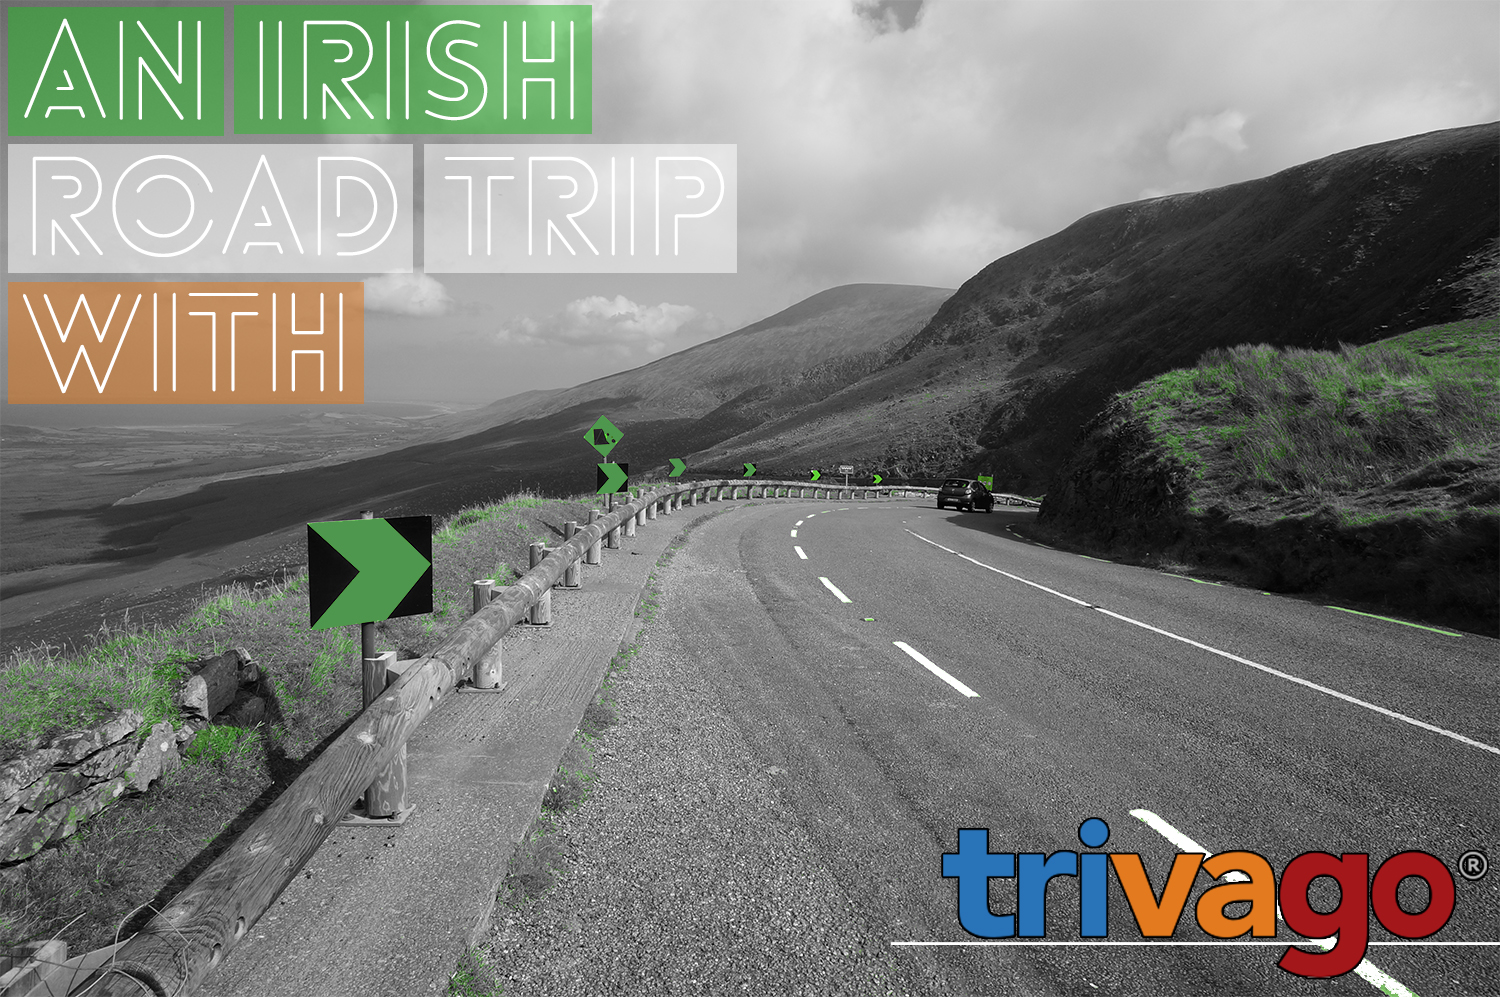 Irish_road_trip_2